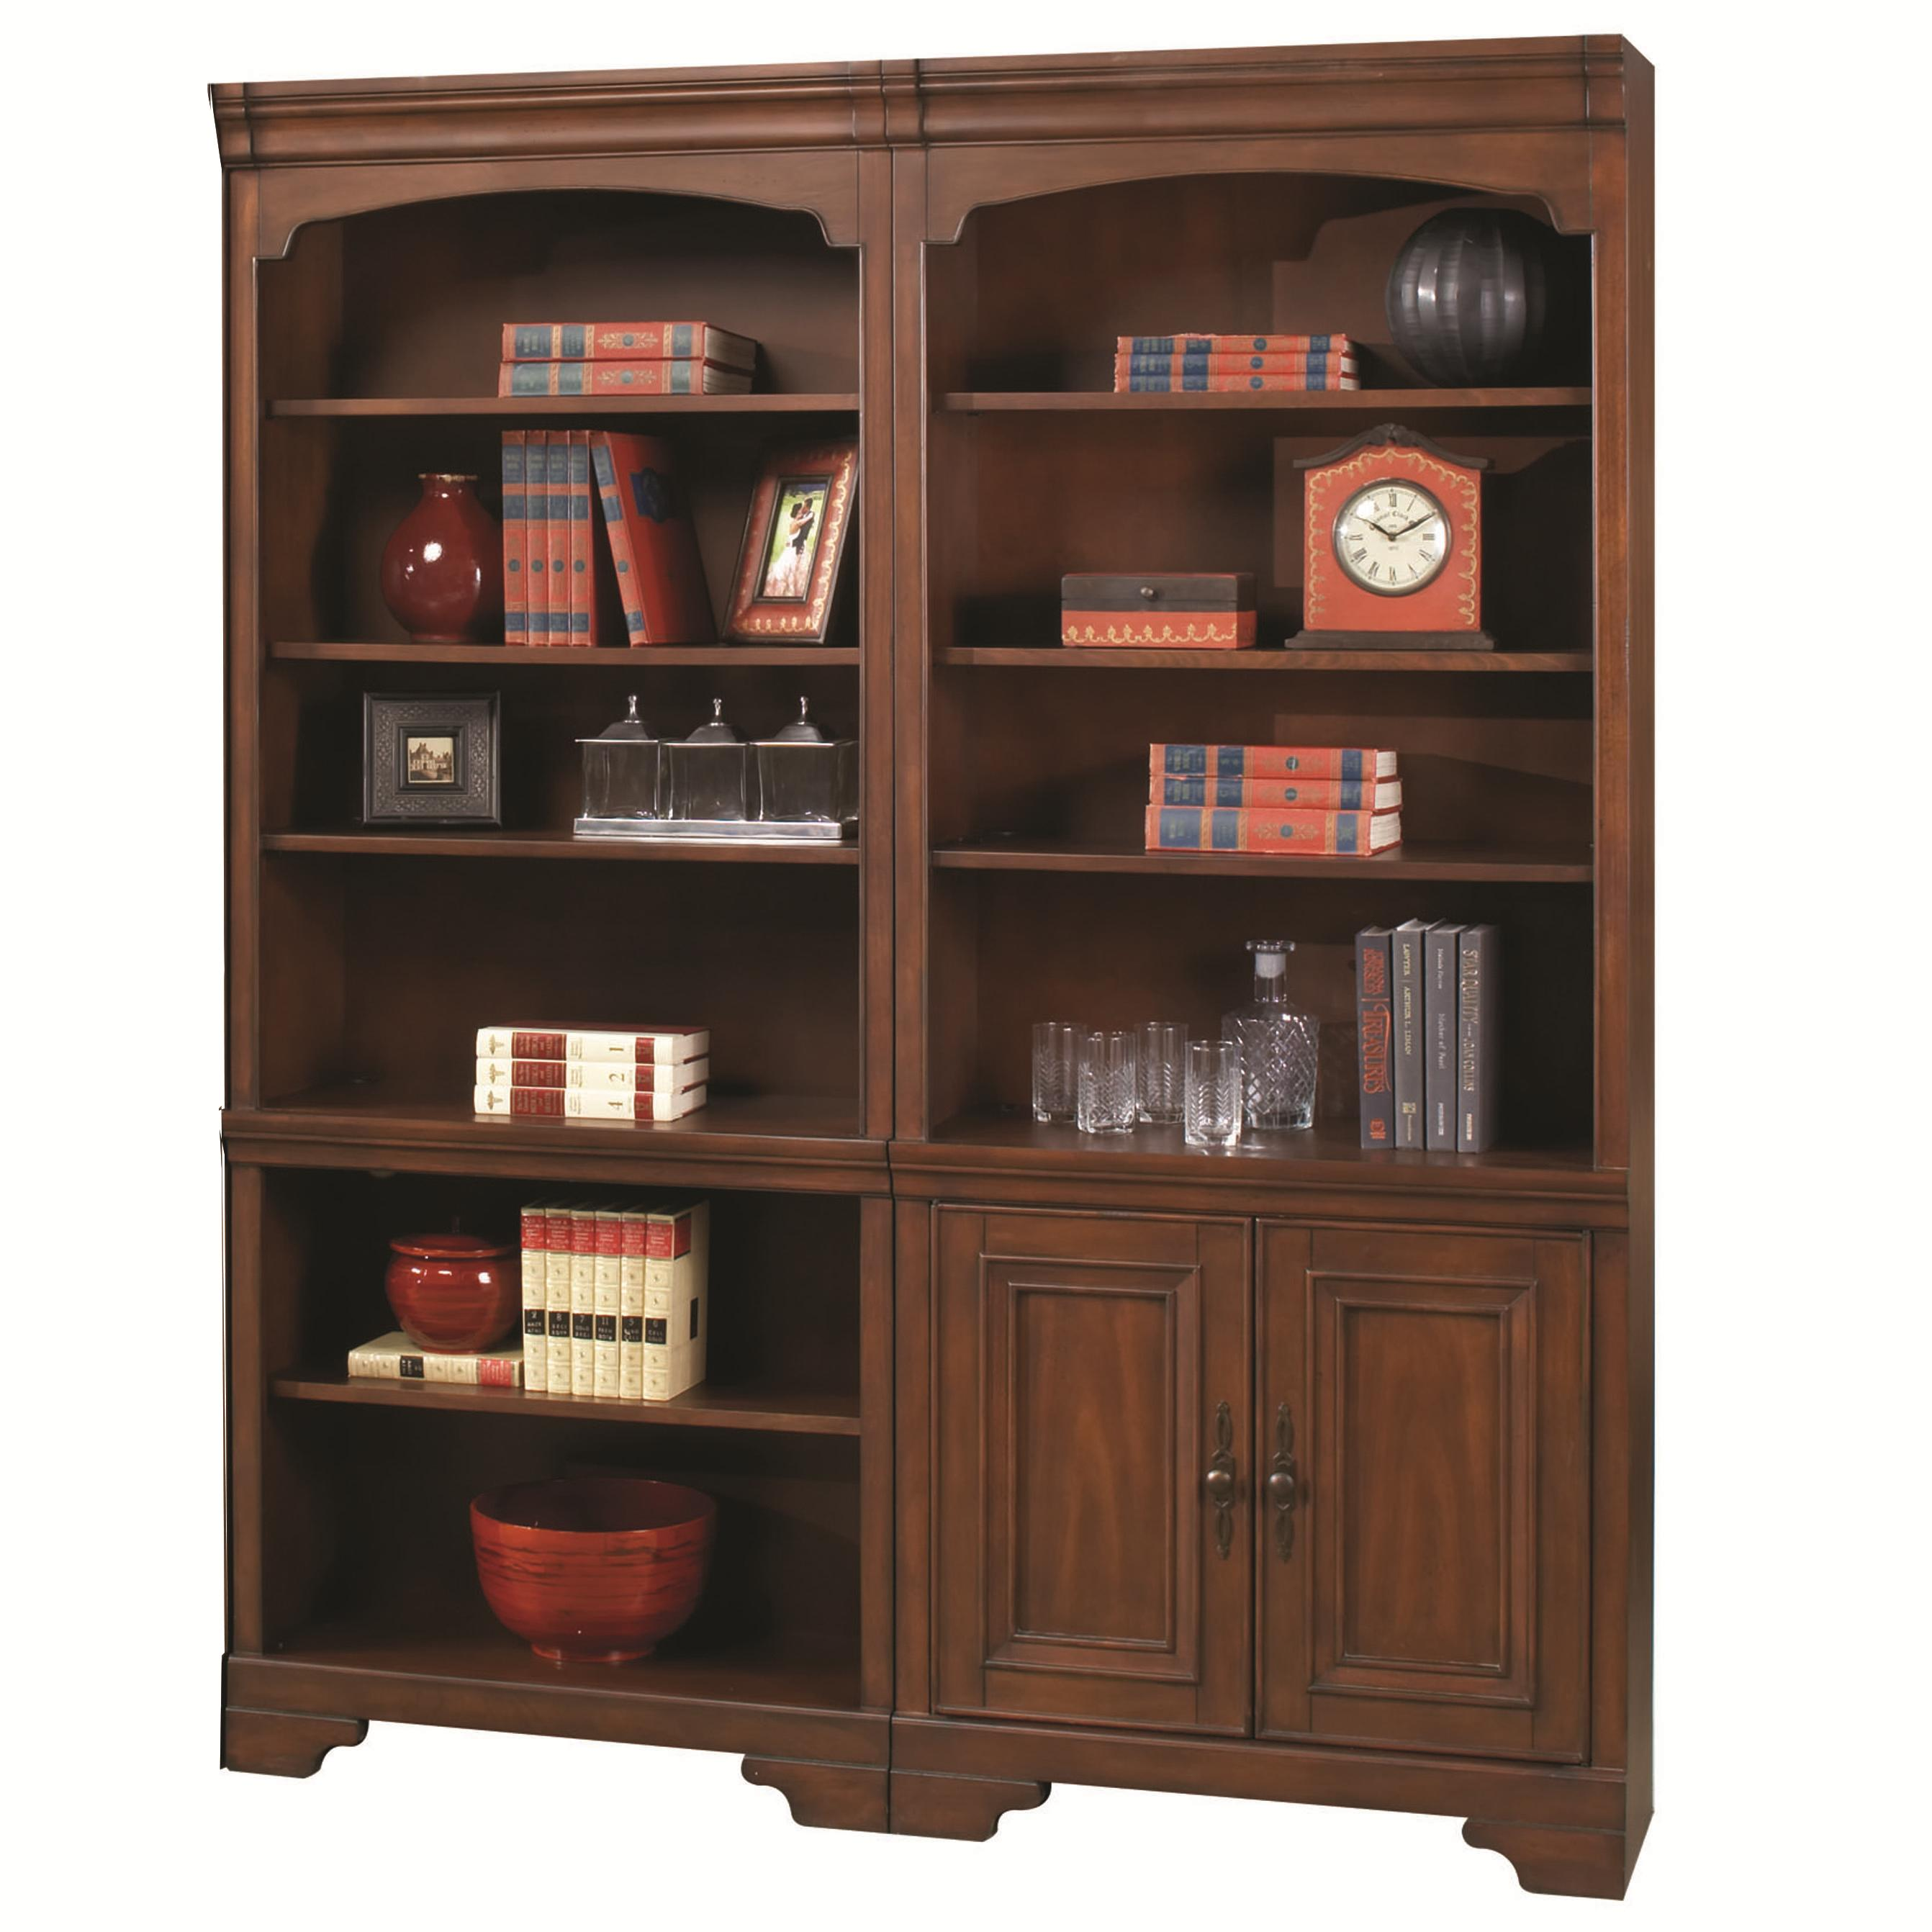 Aspenhome Richmond Small Bookcase  - Item Number: I40-332+3